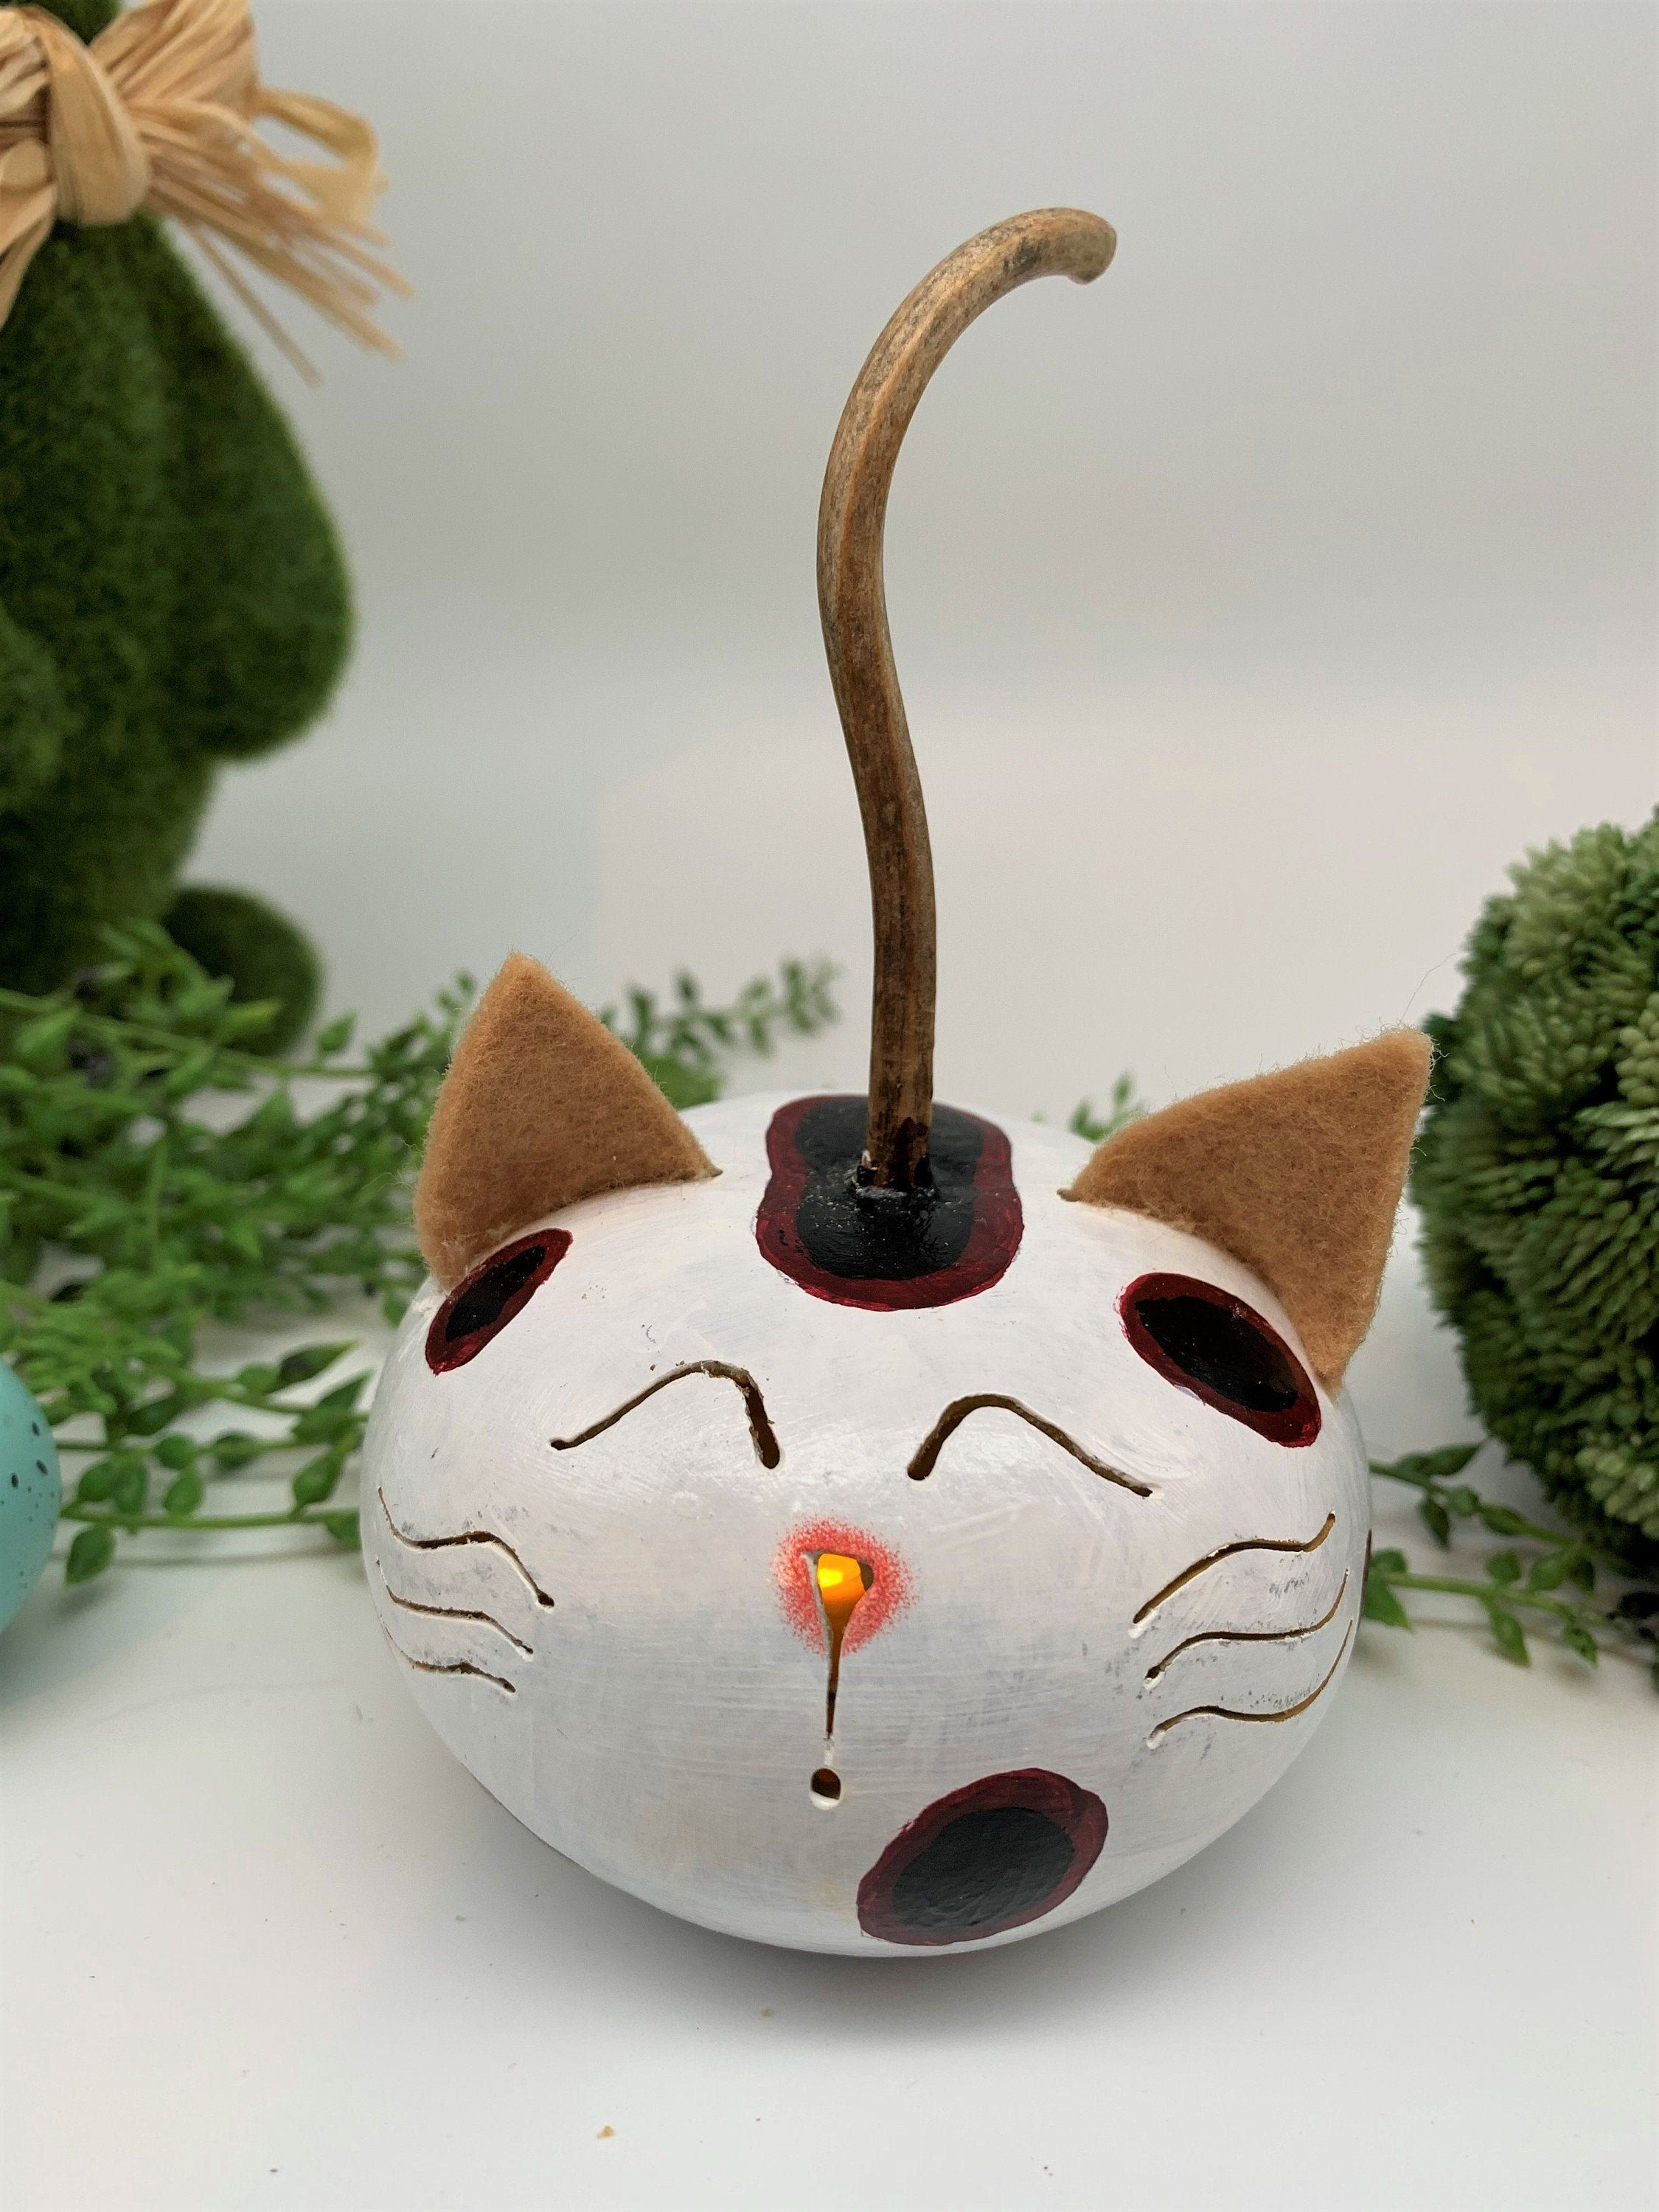 Japanese Lucky Cat Gourd Decoration in 2020 Decorative